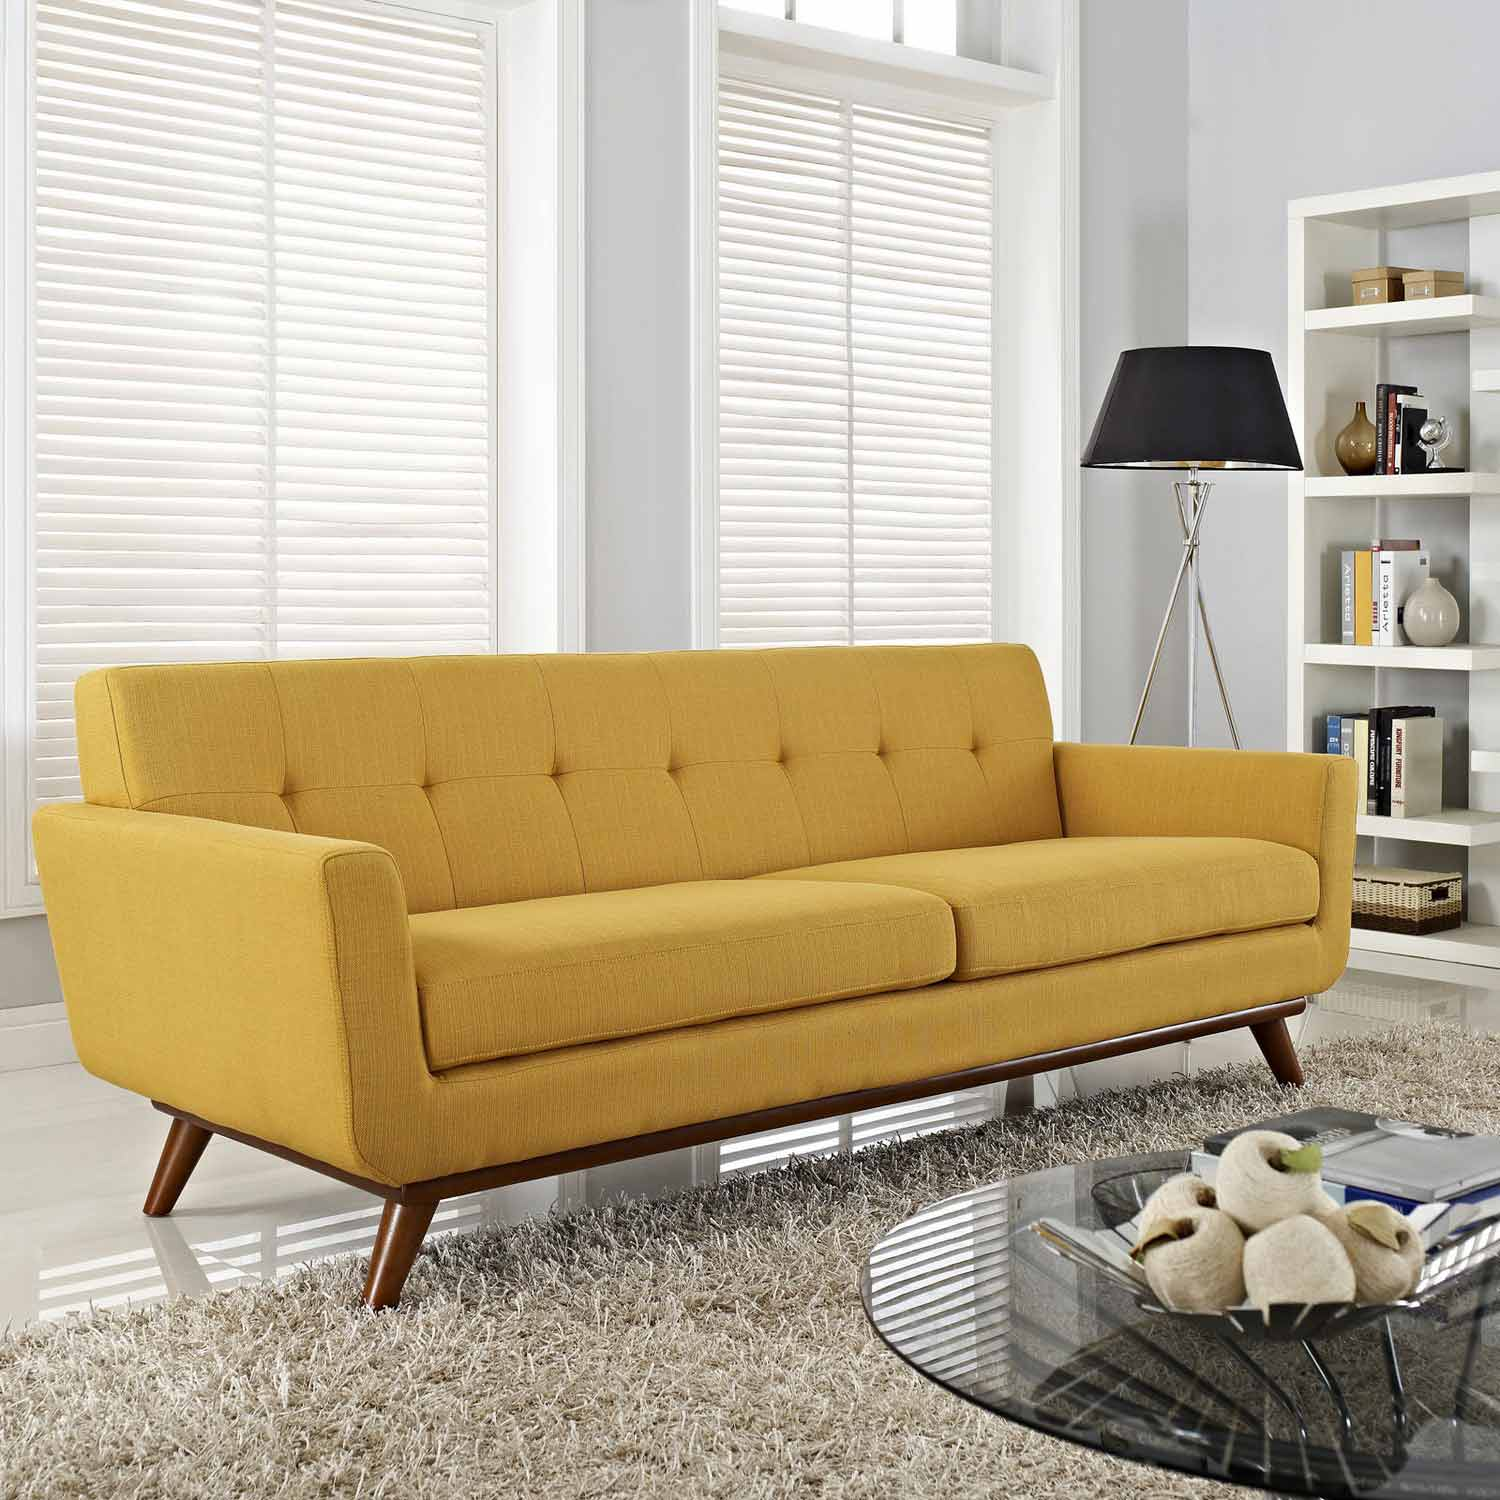 spiers sofa review slipcover for double recliner modway engage upholstered citrus mw eei 1180 cit at